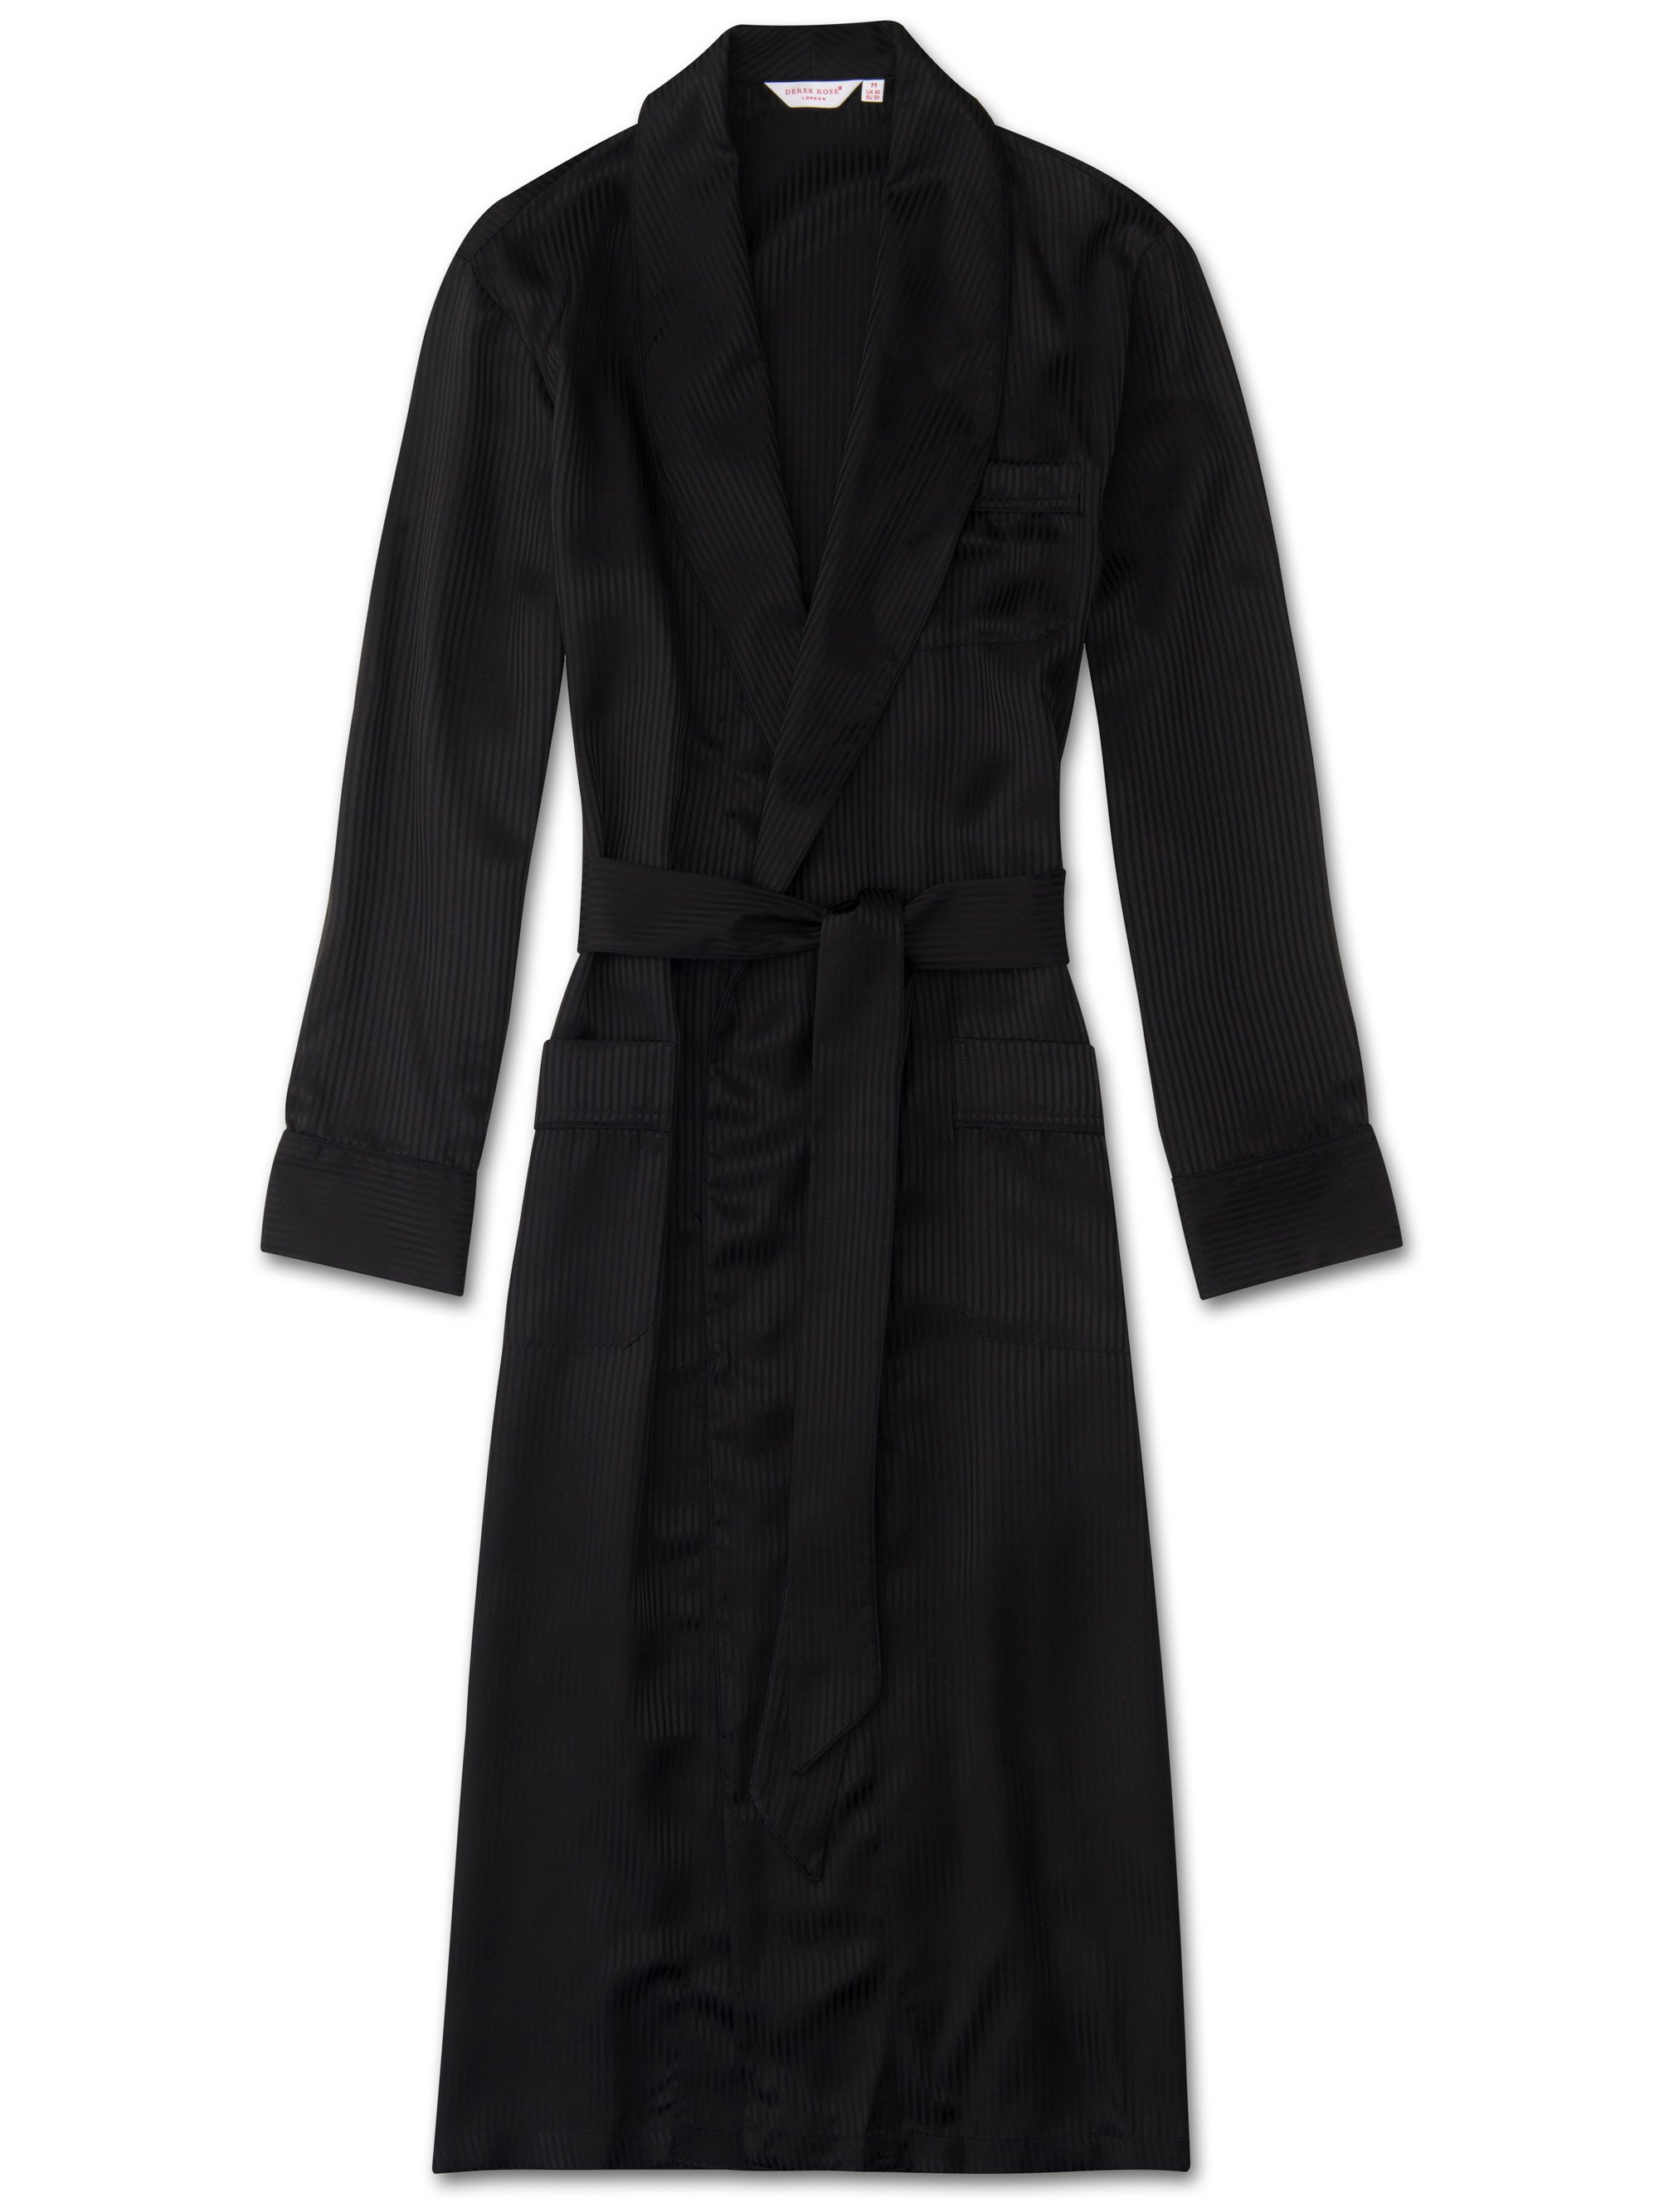 Men's Piped Dressing Gown Woburn 8 Pure Silk Satin Stripe Black